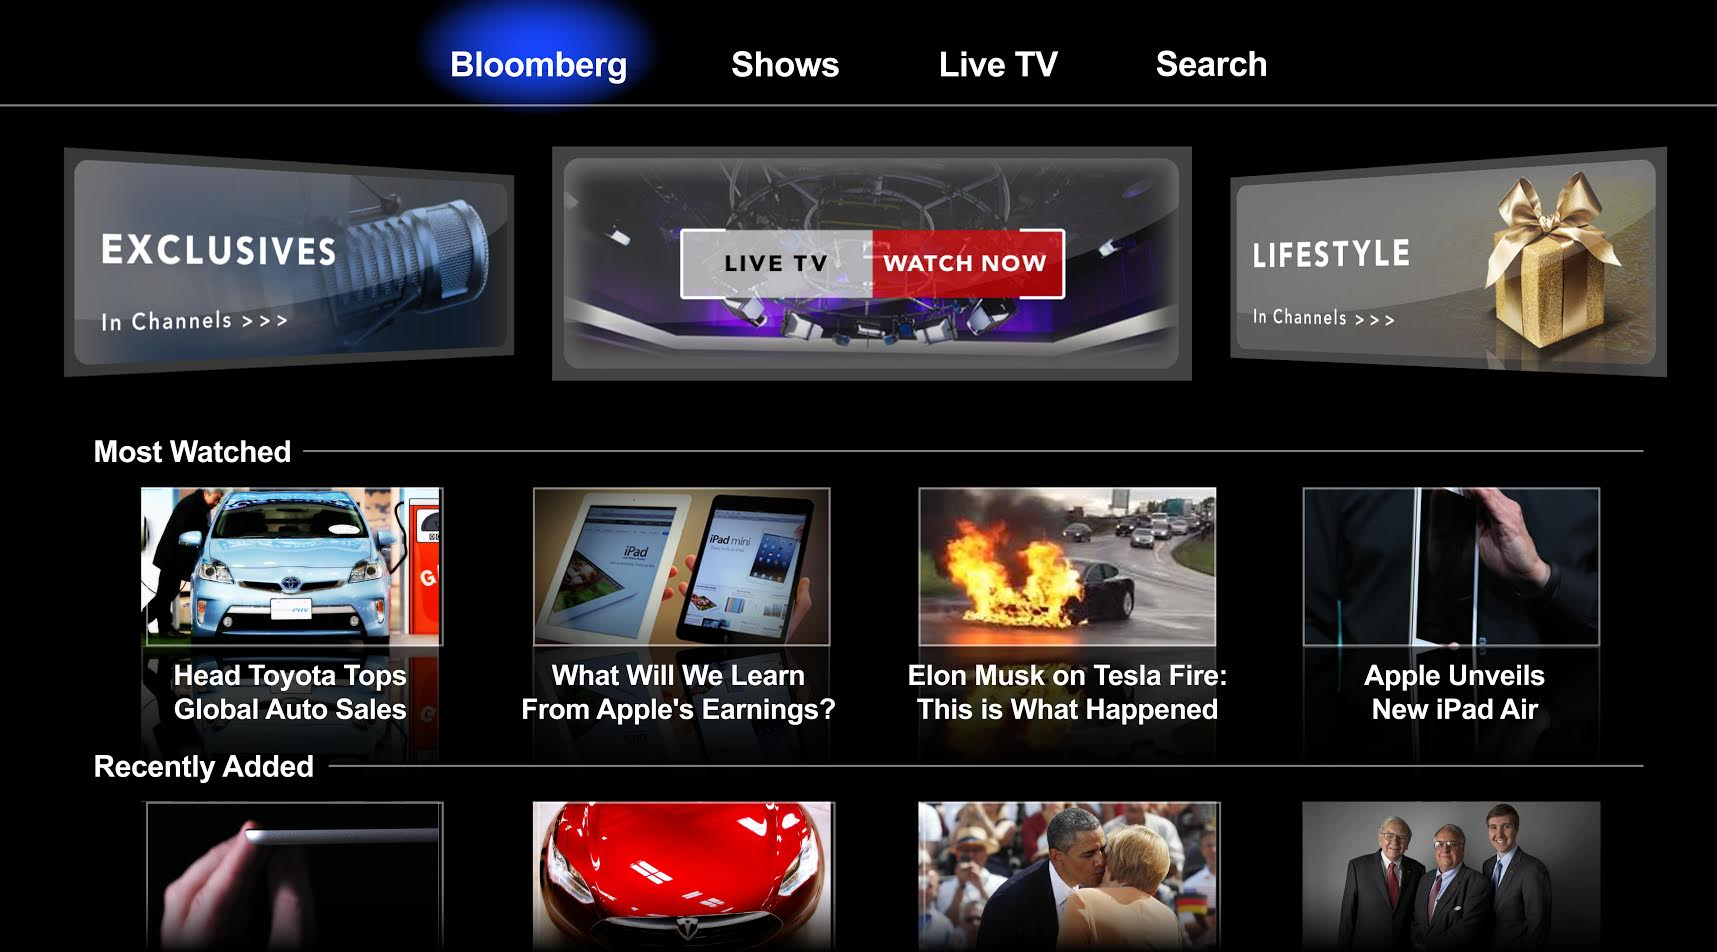 Bloomberg launches on Apple TV globally with 24/7 live news stream